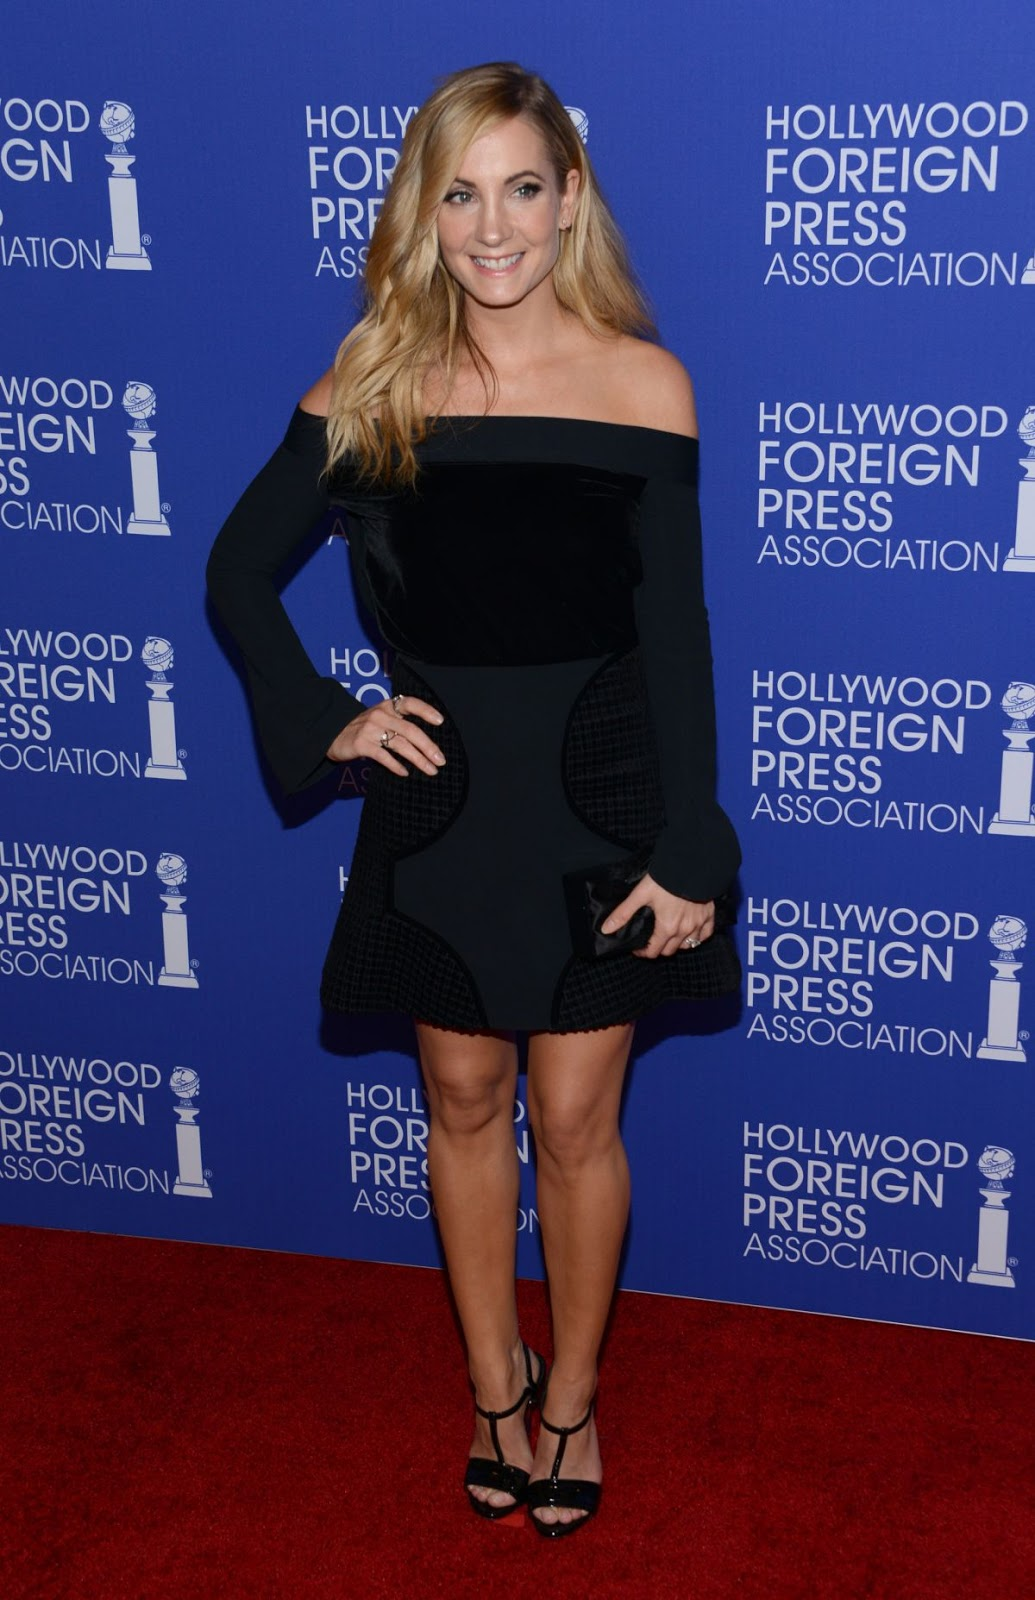 Full HQ Photos of Joanne Froggatt at Hollywood Foreign Press Association's Grants Banquet